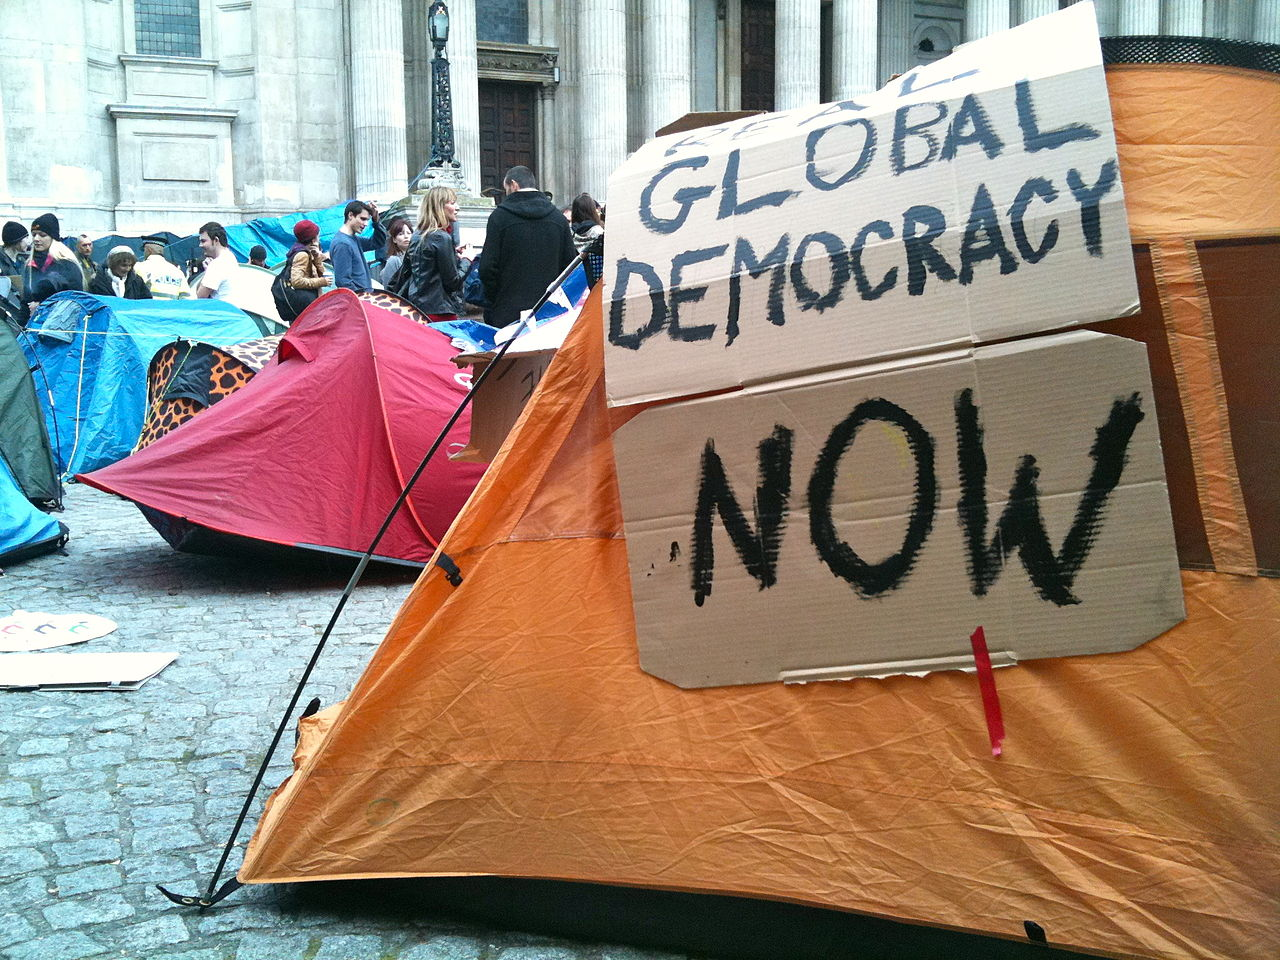 1280px-Occupy_London_Tent